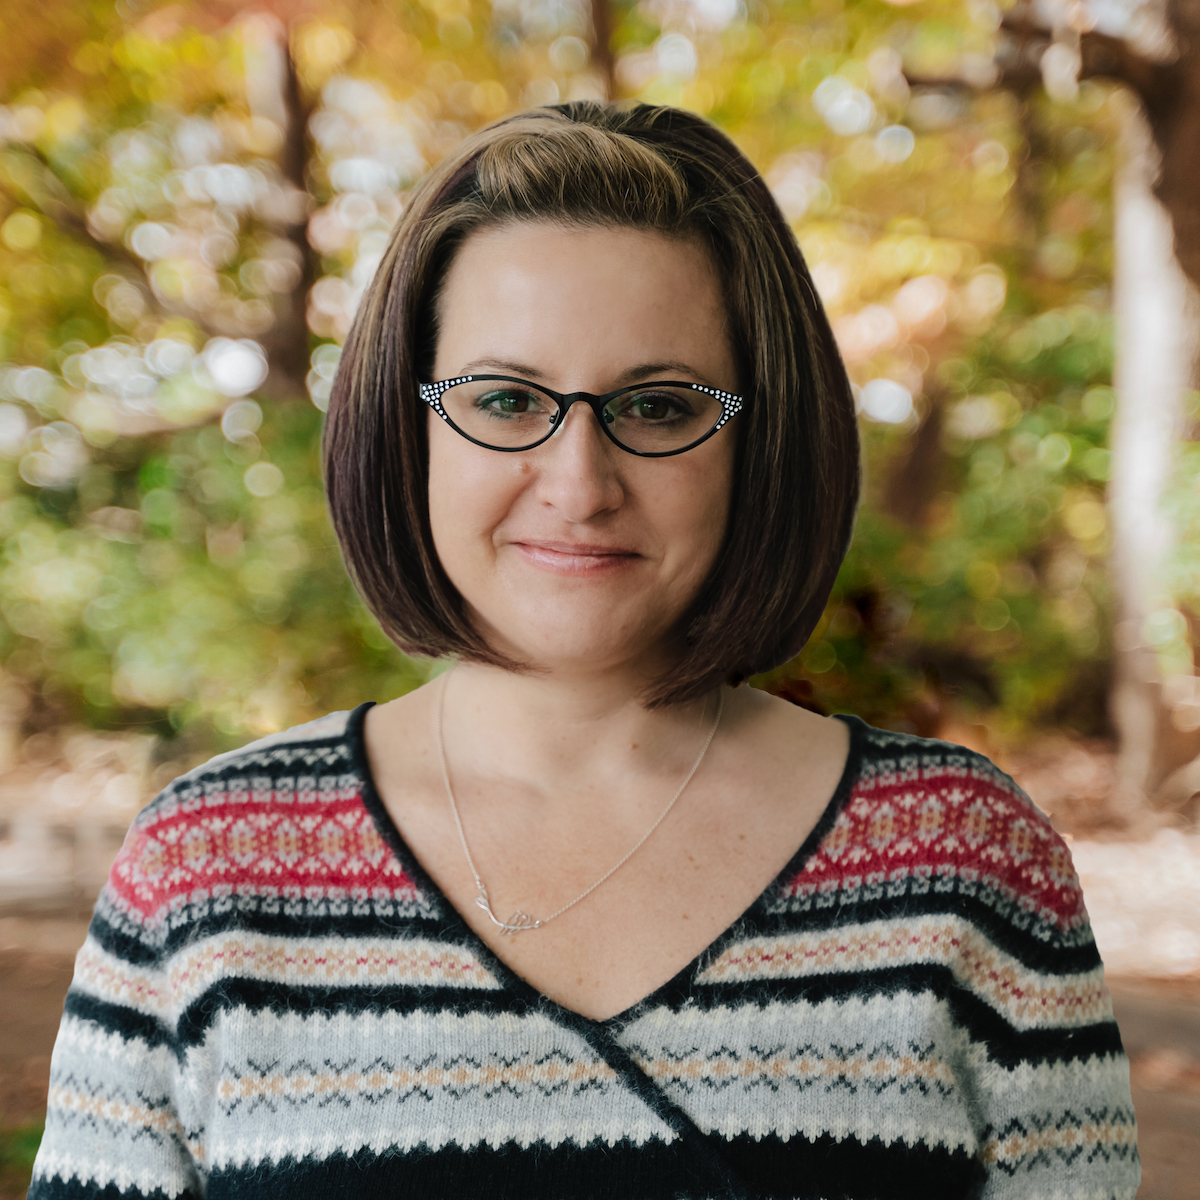 Jackie Daniels, vice president of communications at theIndiana Center for Recovery, says harm reduction 'allows people to stay alive until they determine what will work for them in the long term.'   Courtesy photo